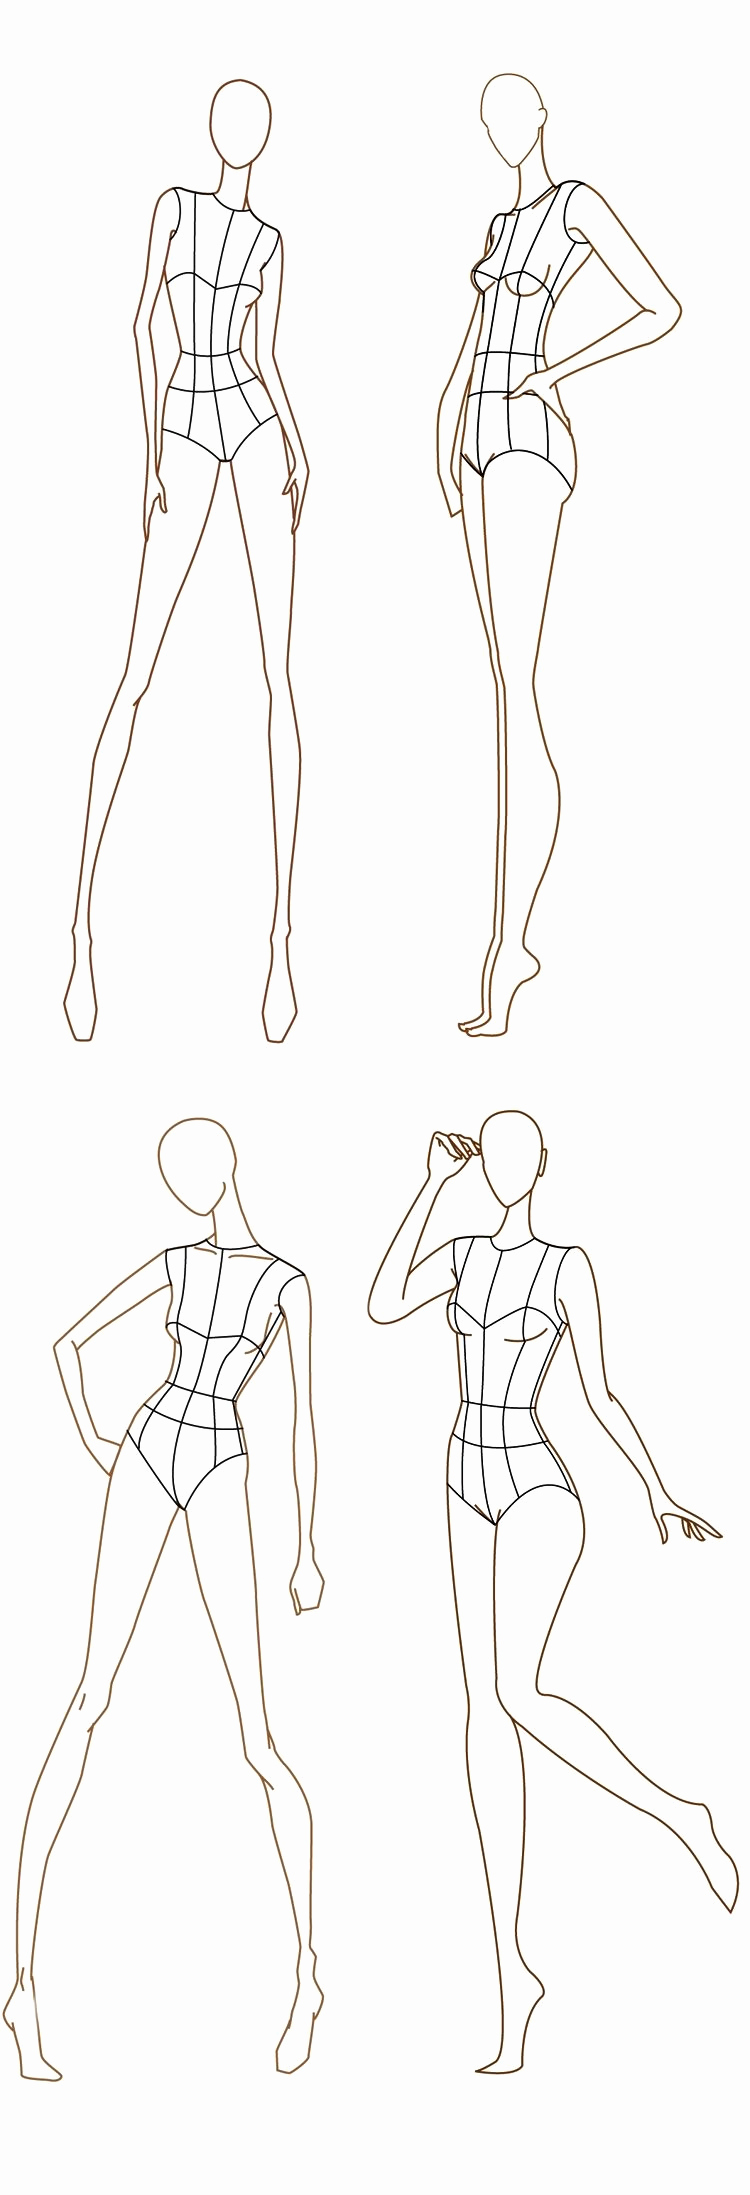 Body Template for Fashion Design Inspirational Free Fashion Croquis 120 Fashion Figure Templates